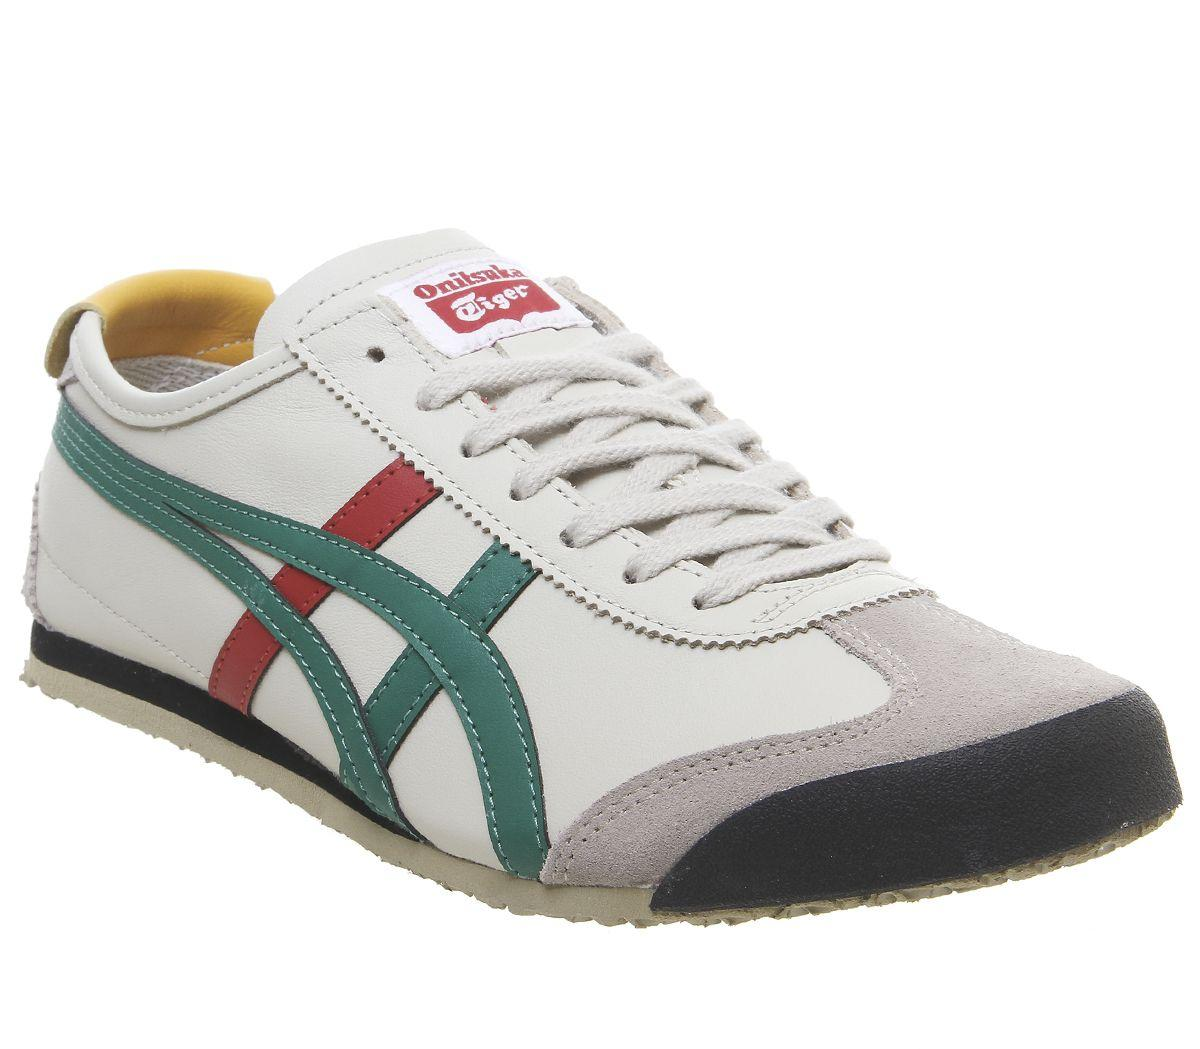 8d82cda33ed Onitsuka Tiger. Women's Mexico 66 Trainers